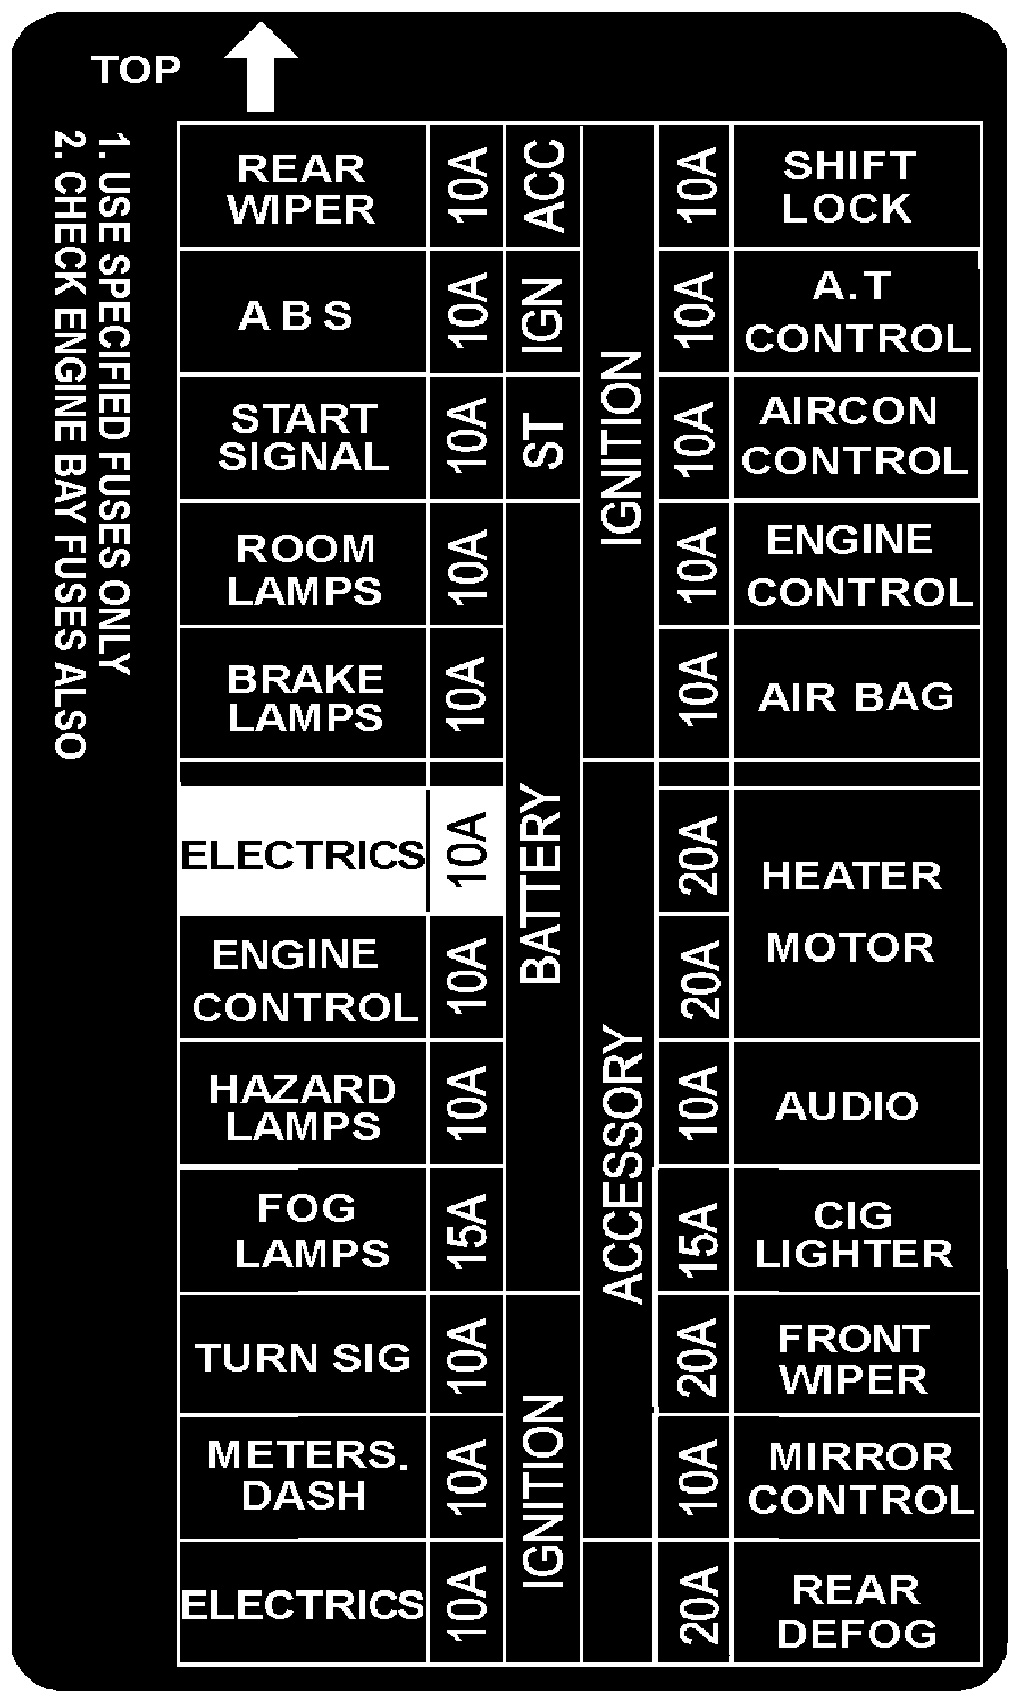 Toyota Estima Fuse Box Layout In English Wiring Diagram Libraries Lucida Schematicsenglish Diagrams Car